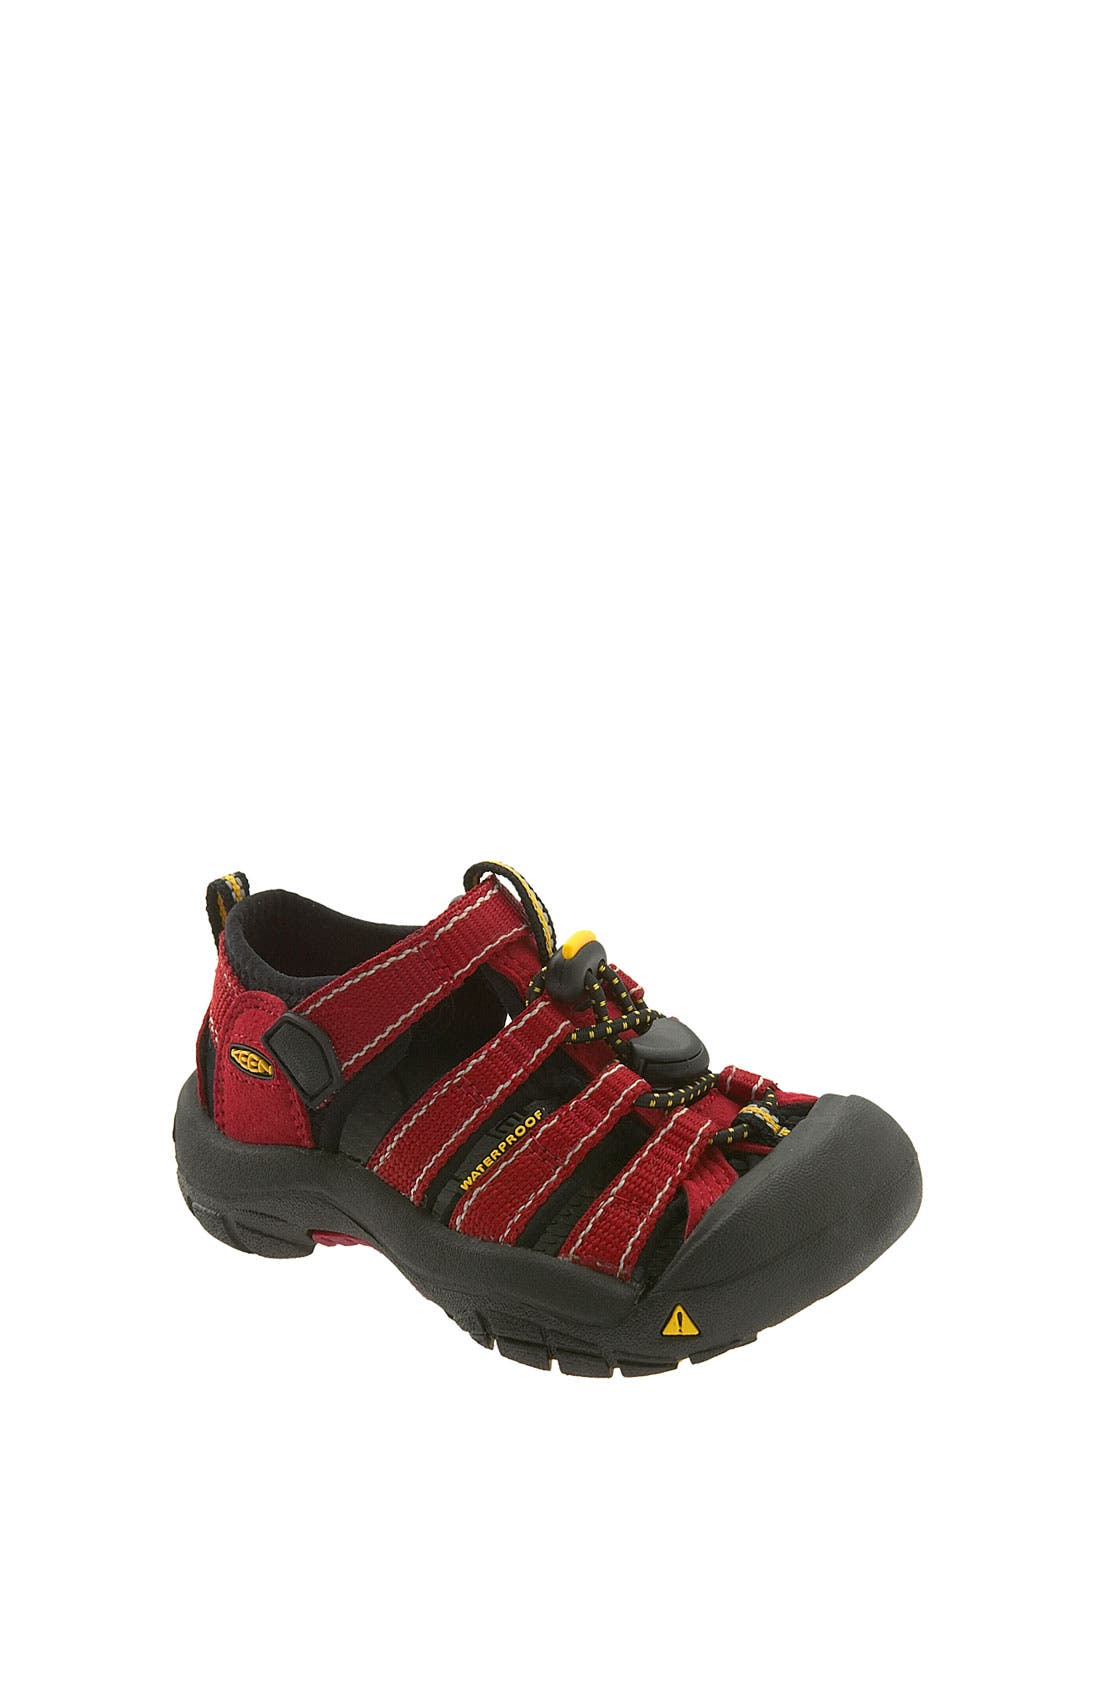 Main Image - Keen 'Newport H2' Waterproof Sandal (Toddler, Little Kid & Big Kid)